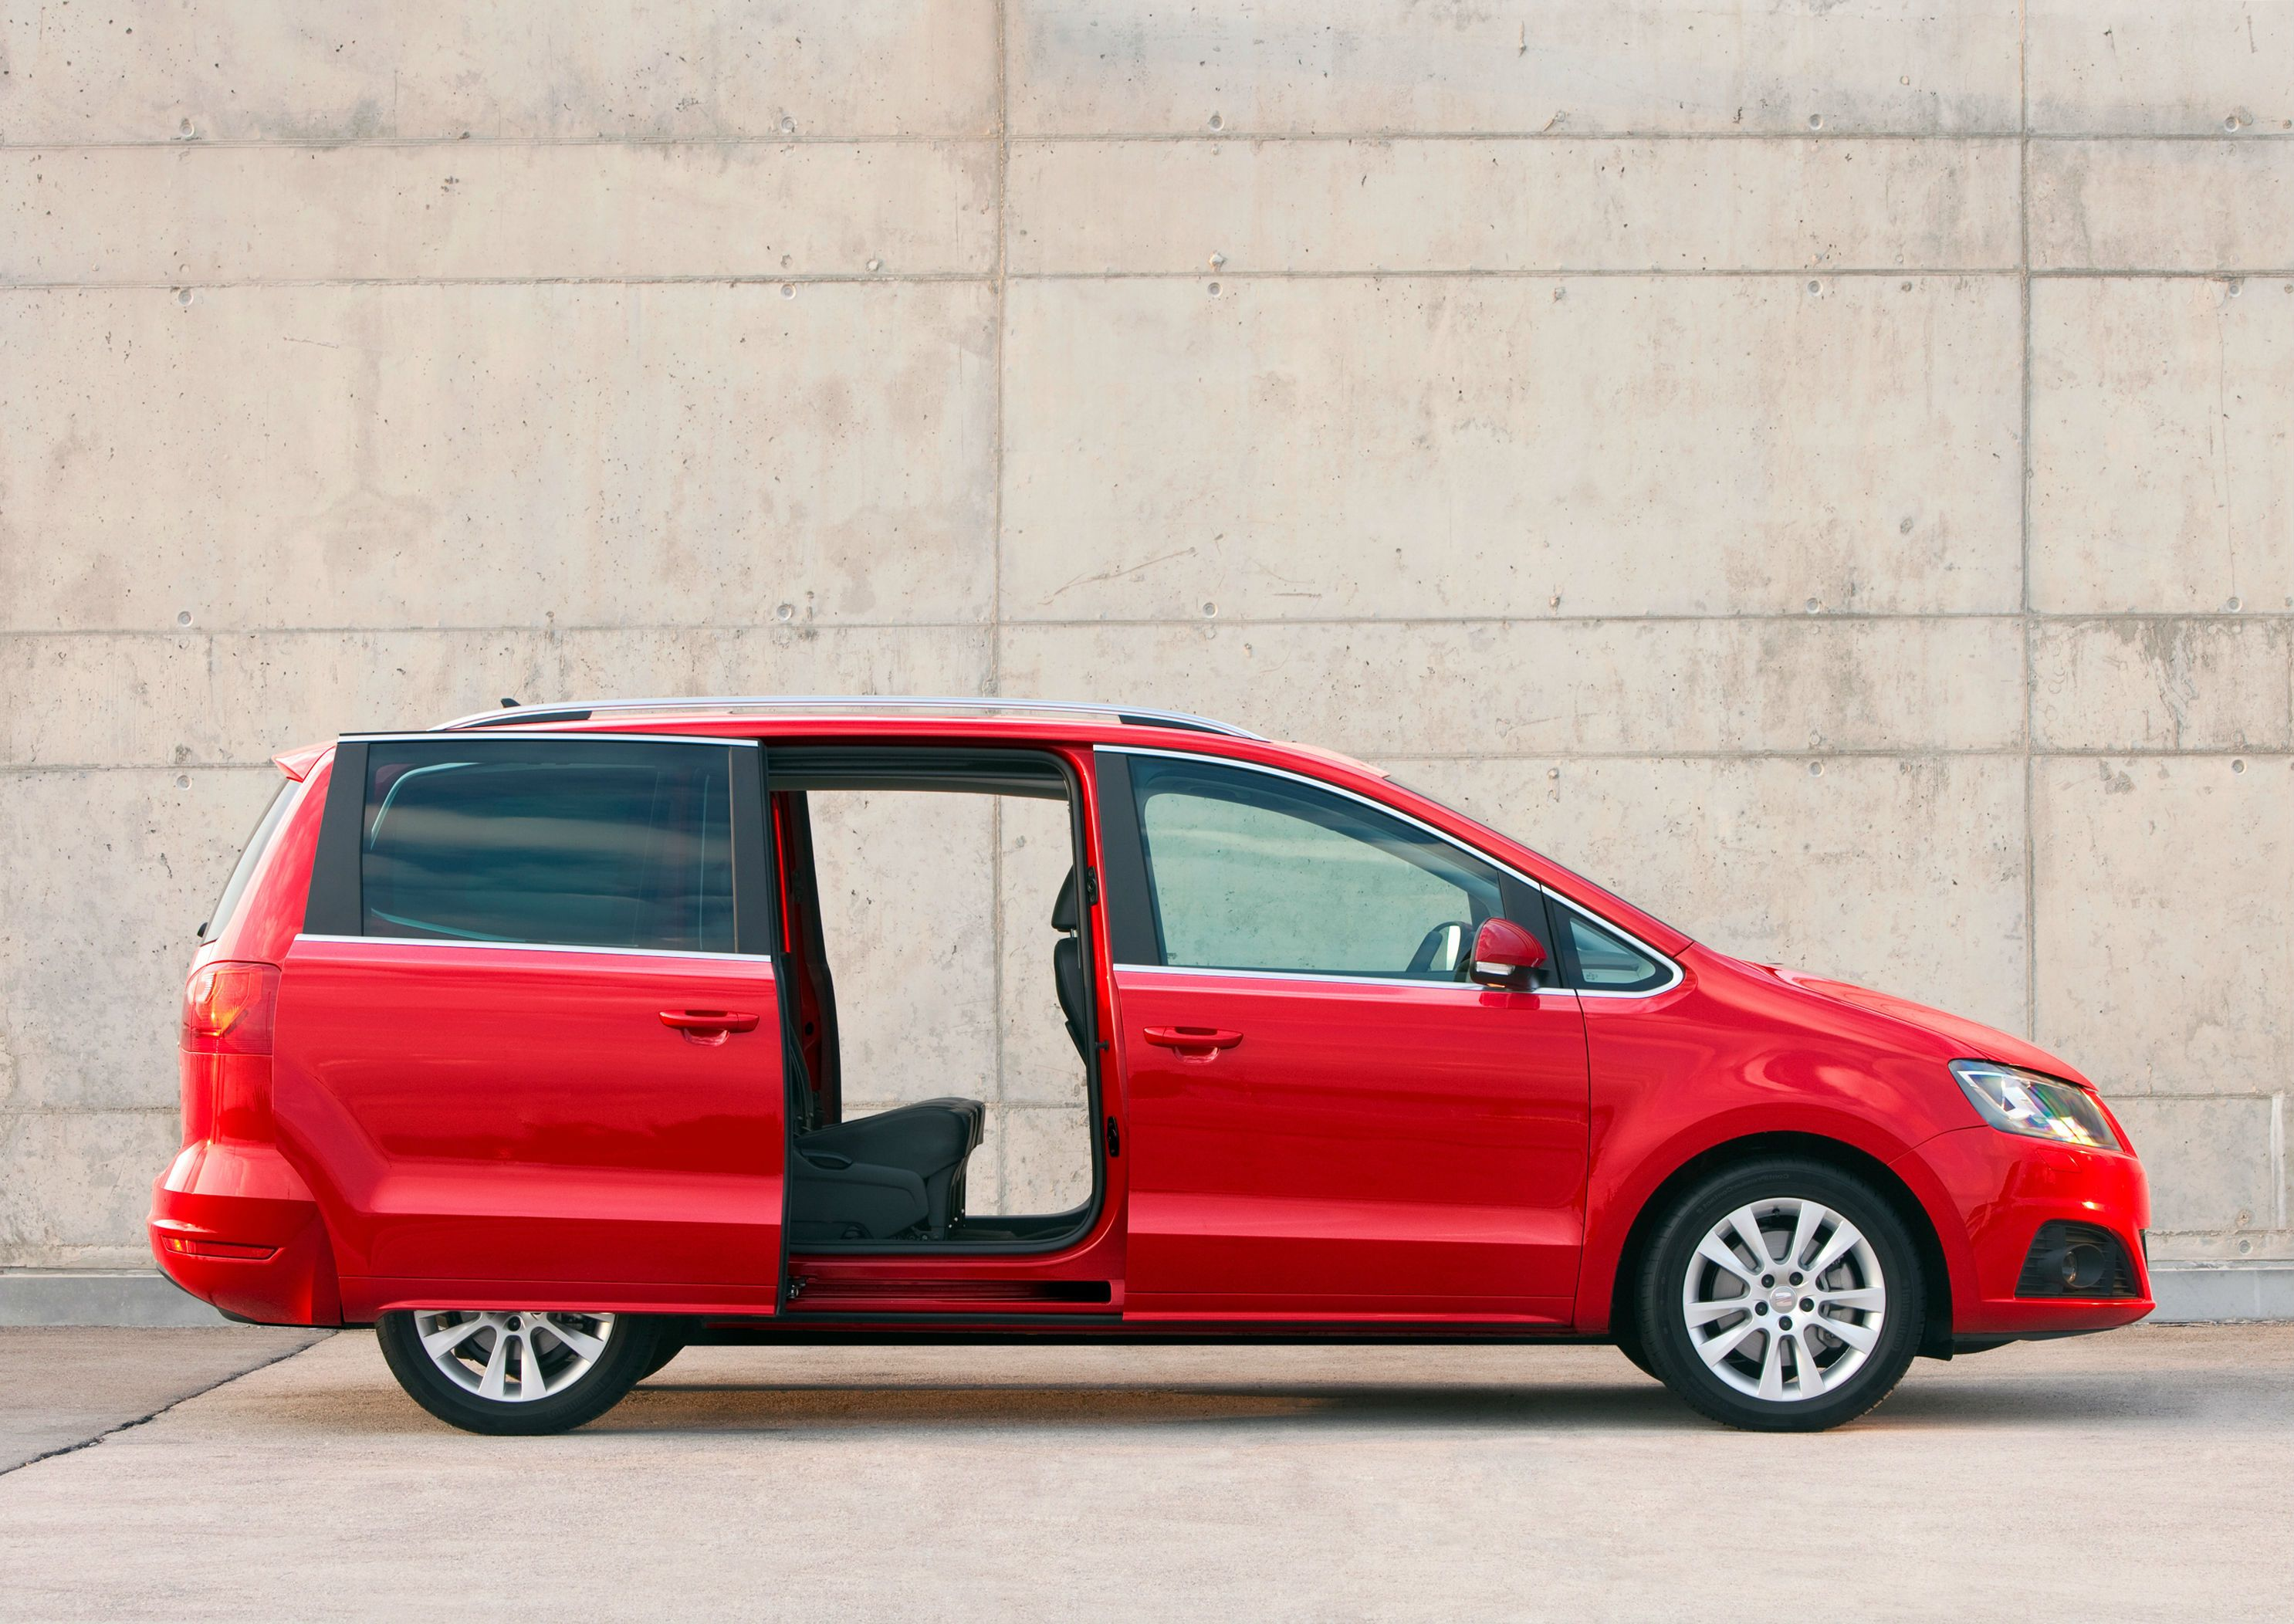 Image Result For Interior Economy 7 Seater Van With Automatic Sliding Door Car Buying Guide Car Buying Used Cars